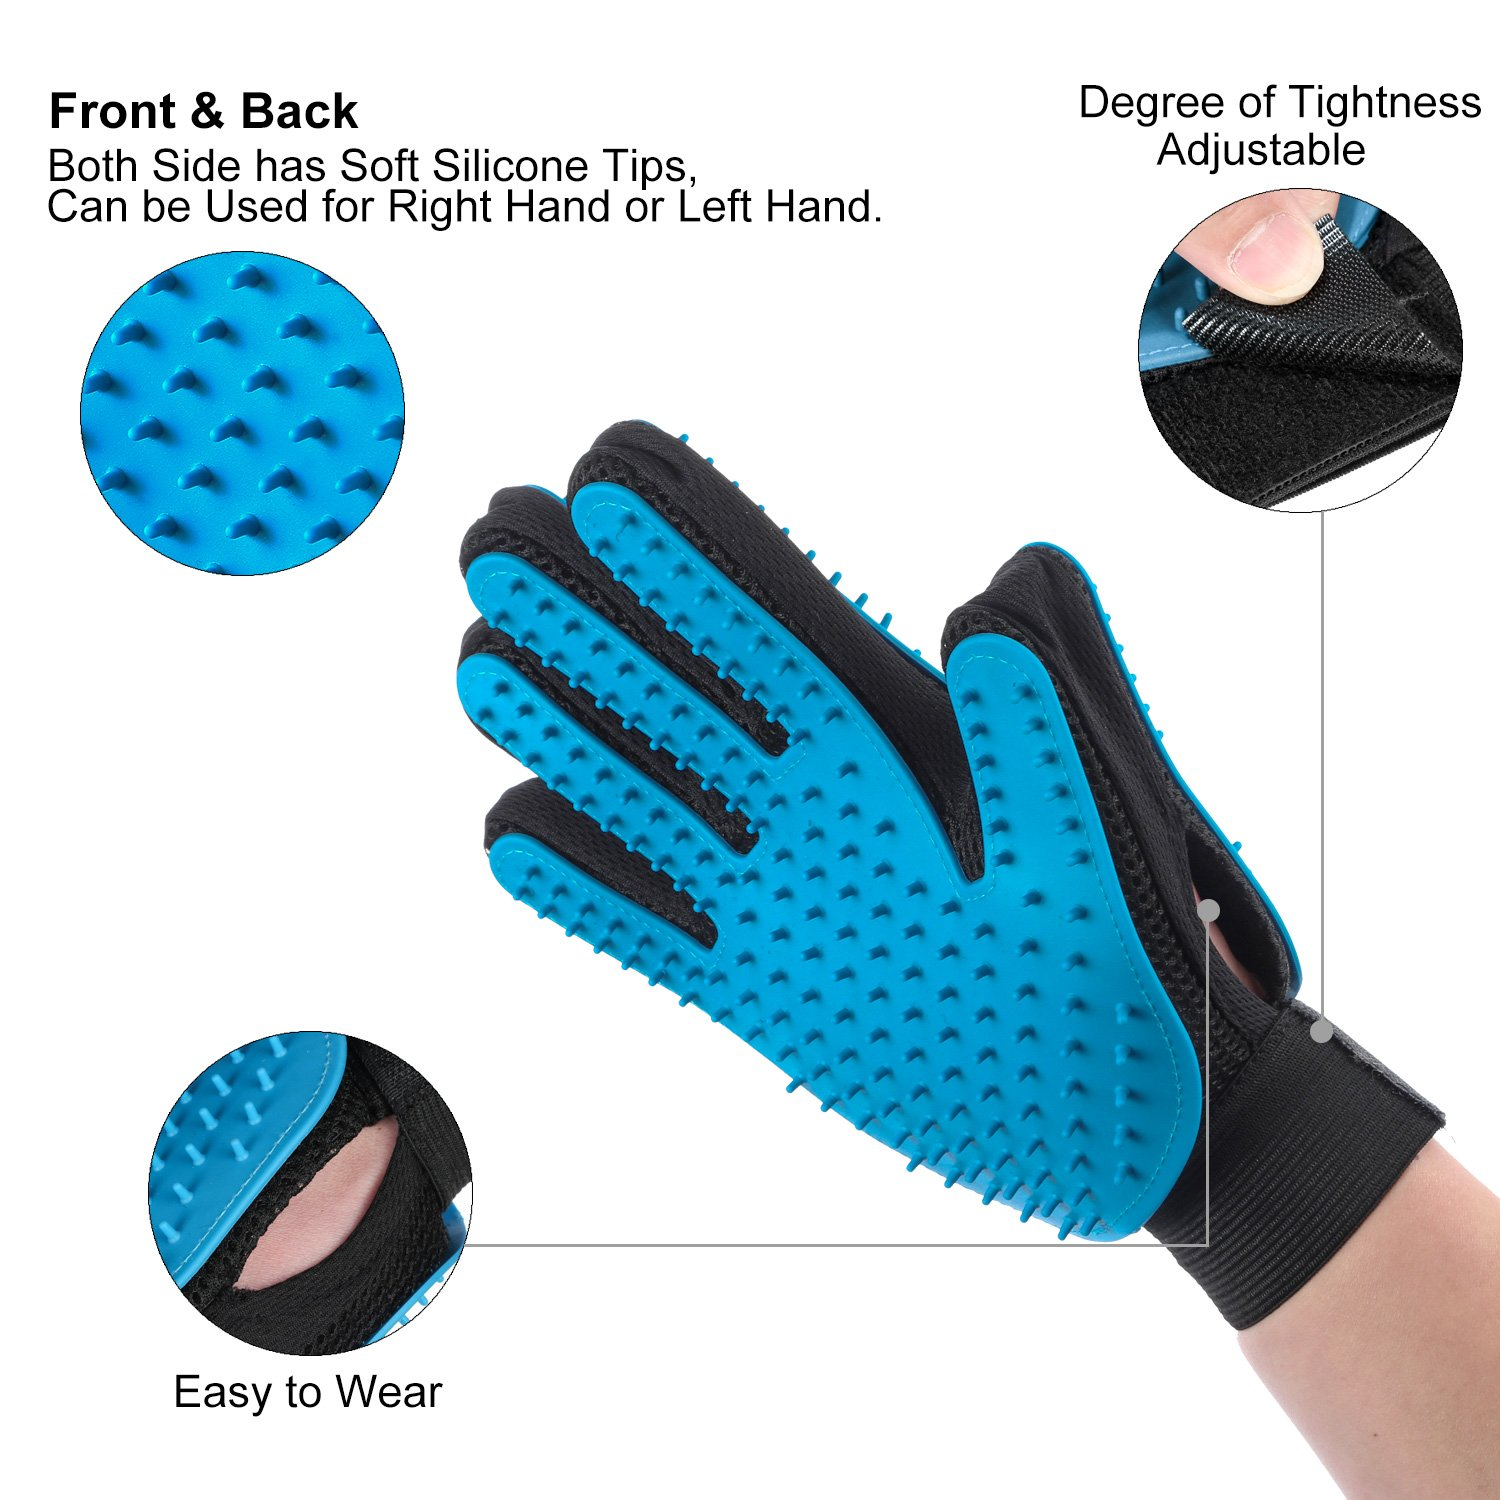 Pet Grooming Glove for Long and Short Fur - Hair Remover Mitt - Gentle Deshedding Brush - Efficient Double Side with Five Finger Design for Horses, Dogs and Cats - Blue